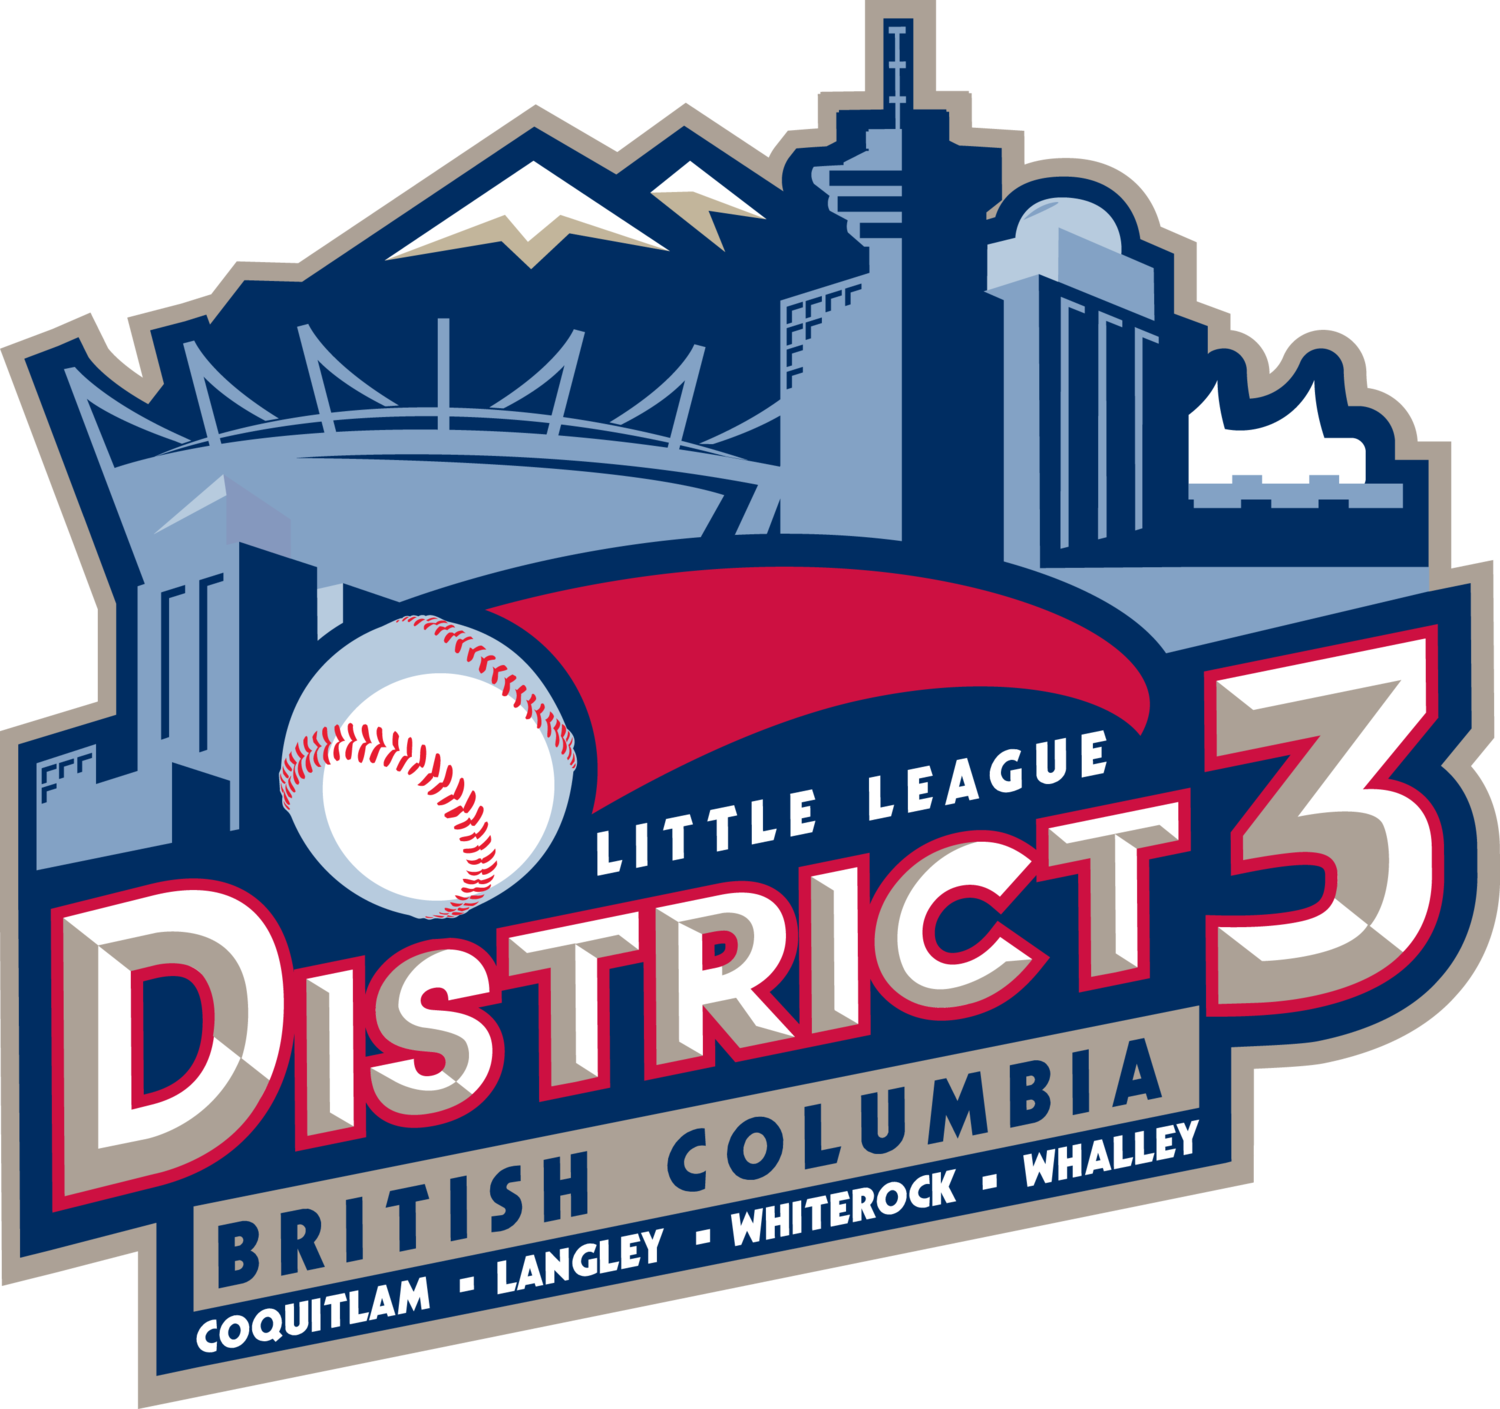 District 3 BC Little League